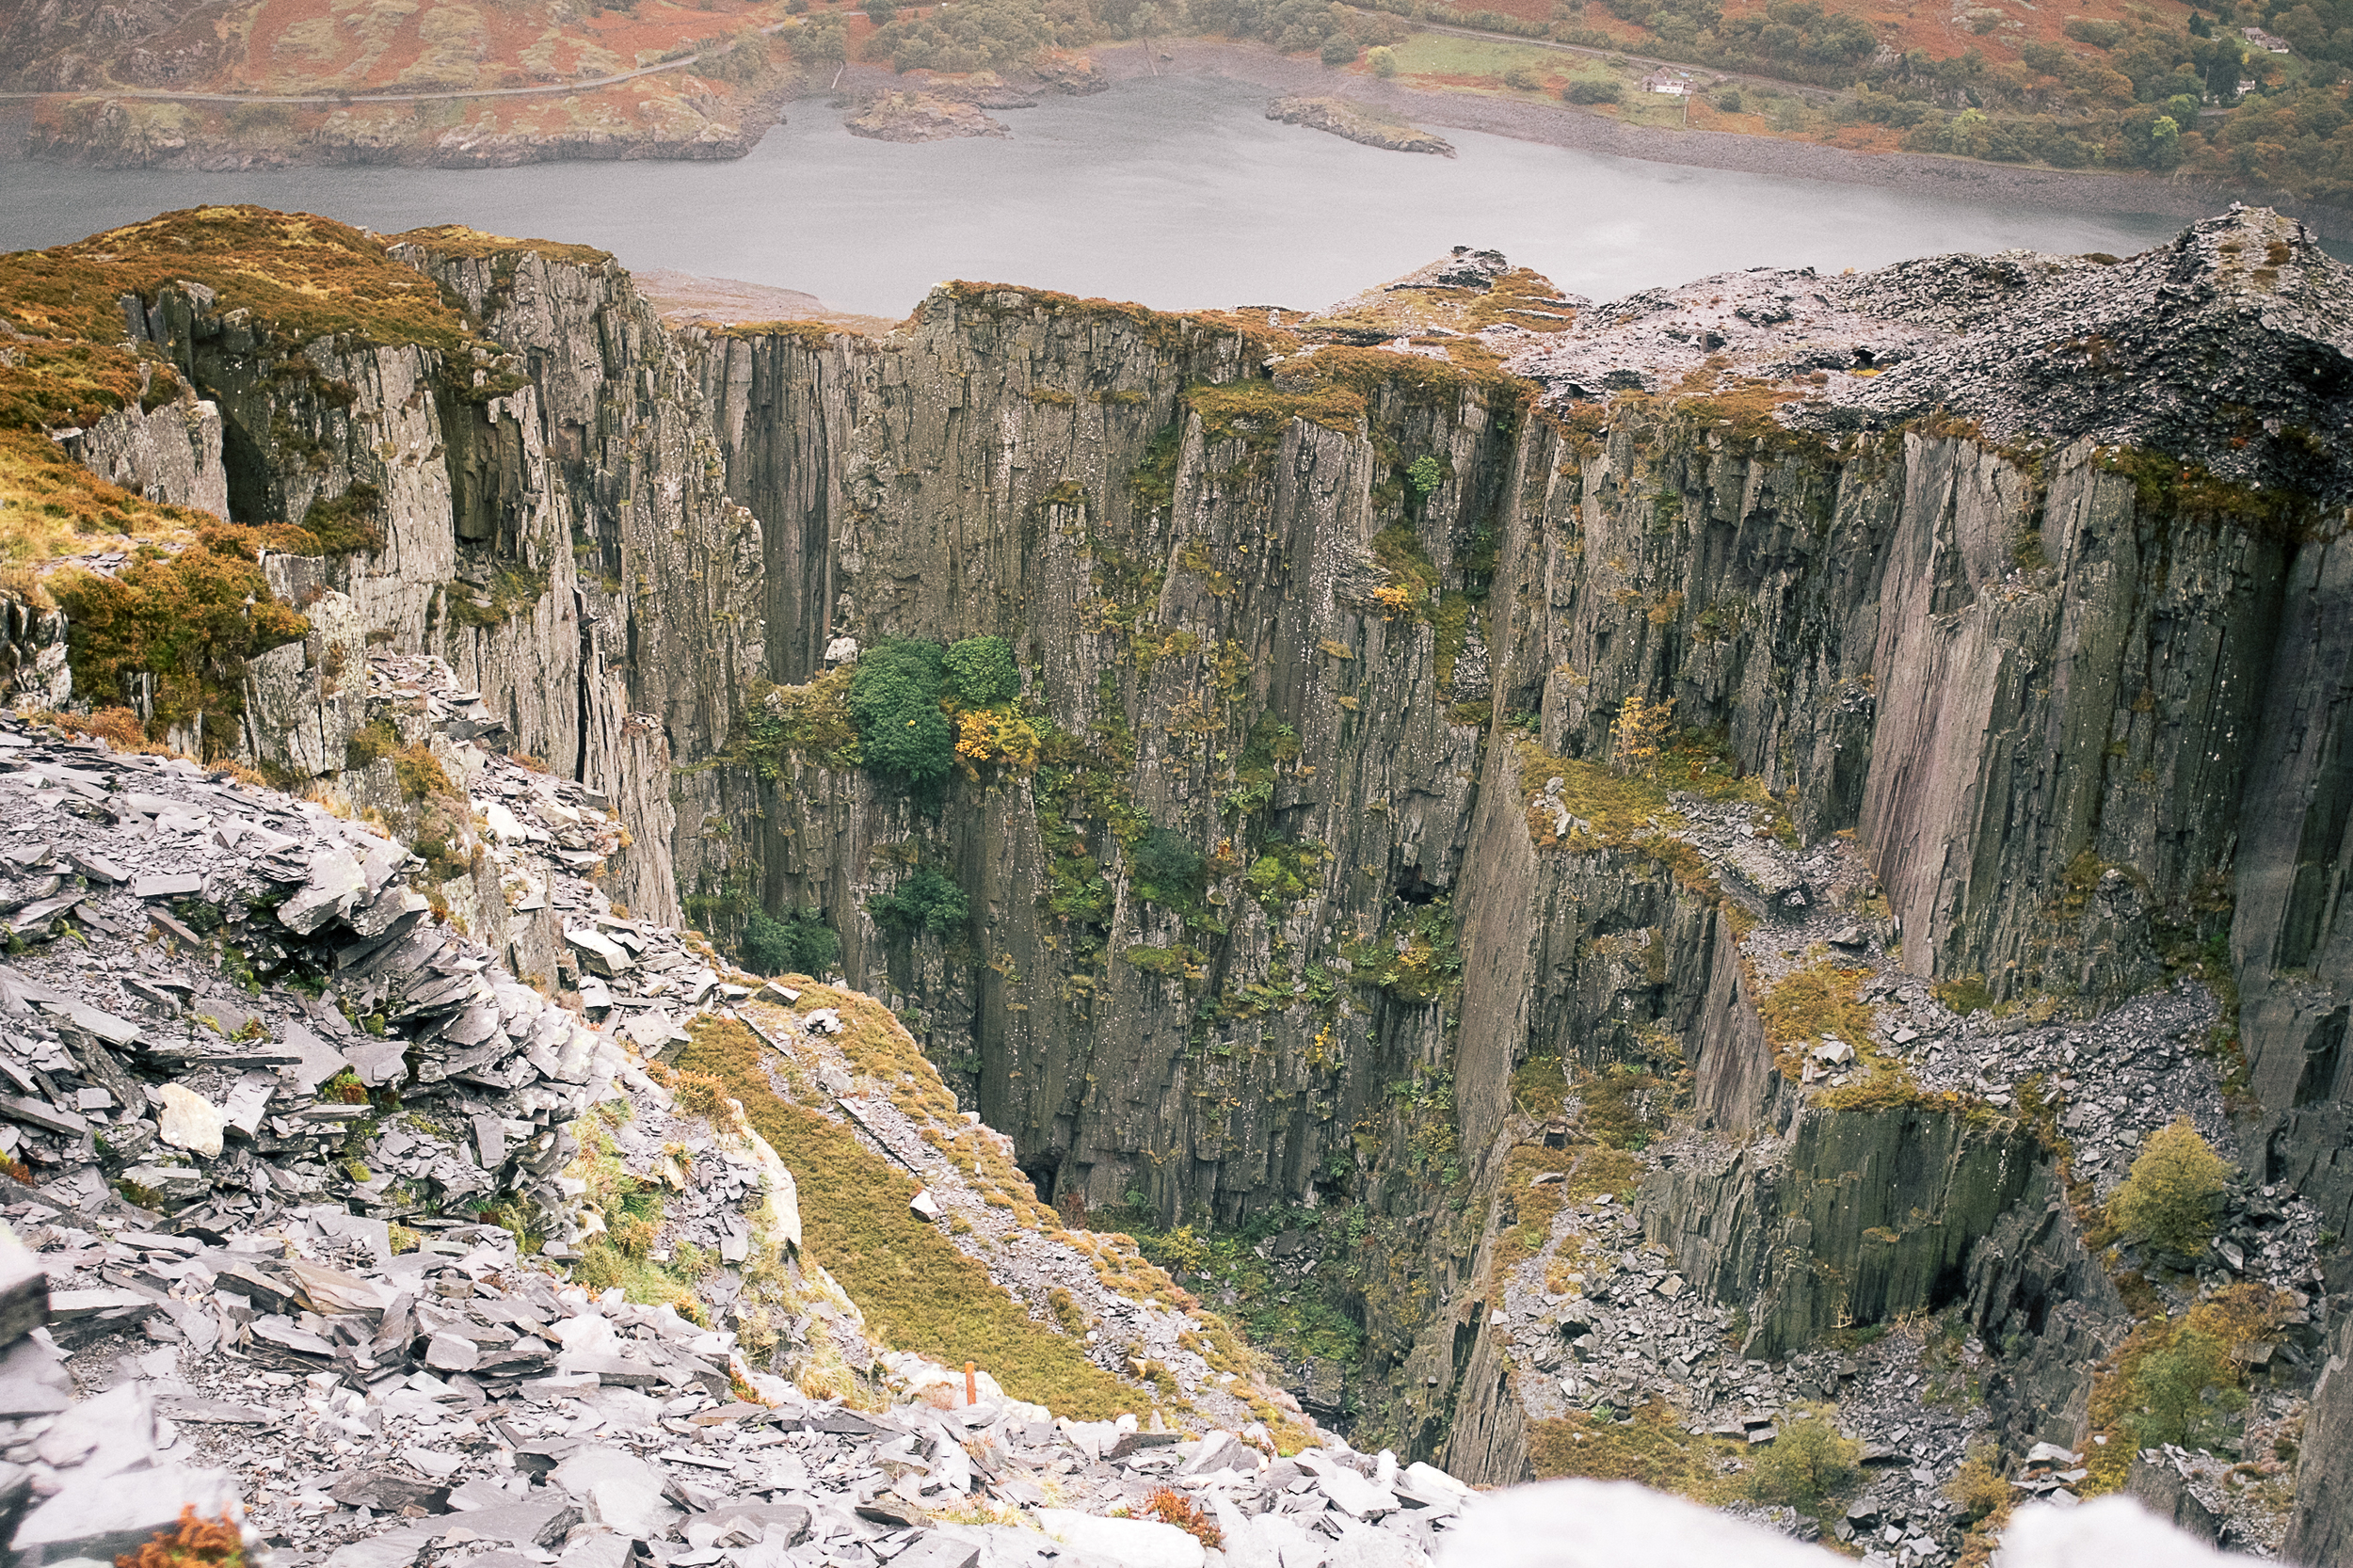 north_wales_dinorwic_slate_quarry_photos-1-13.jpg